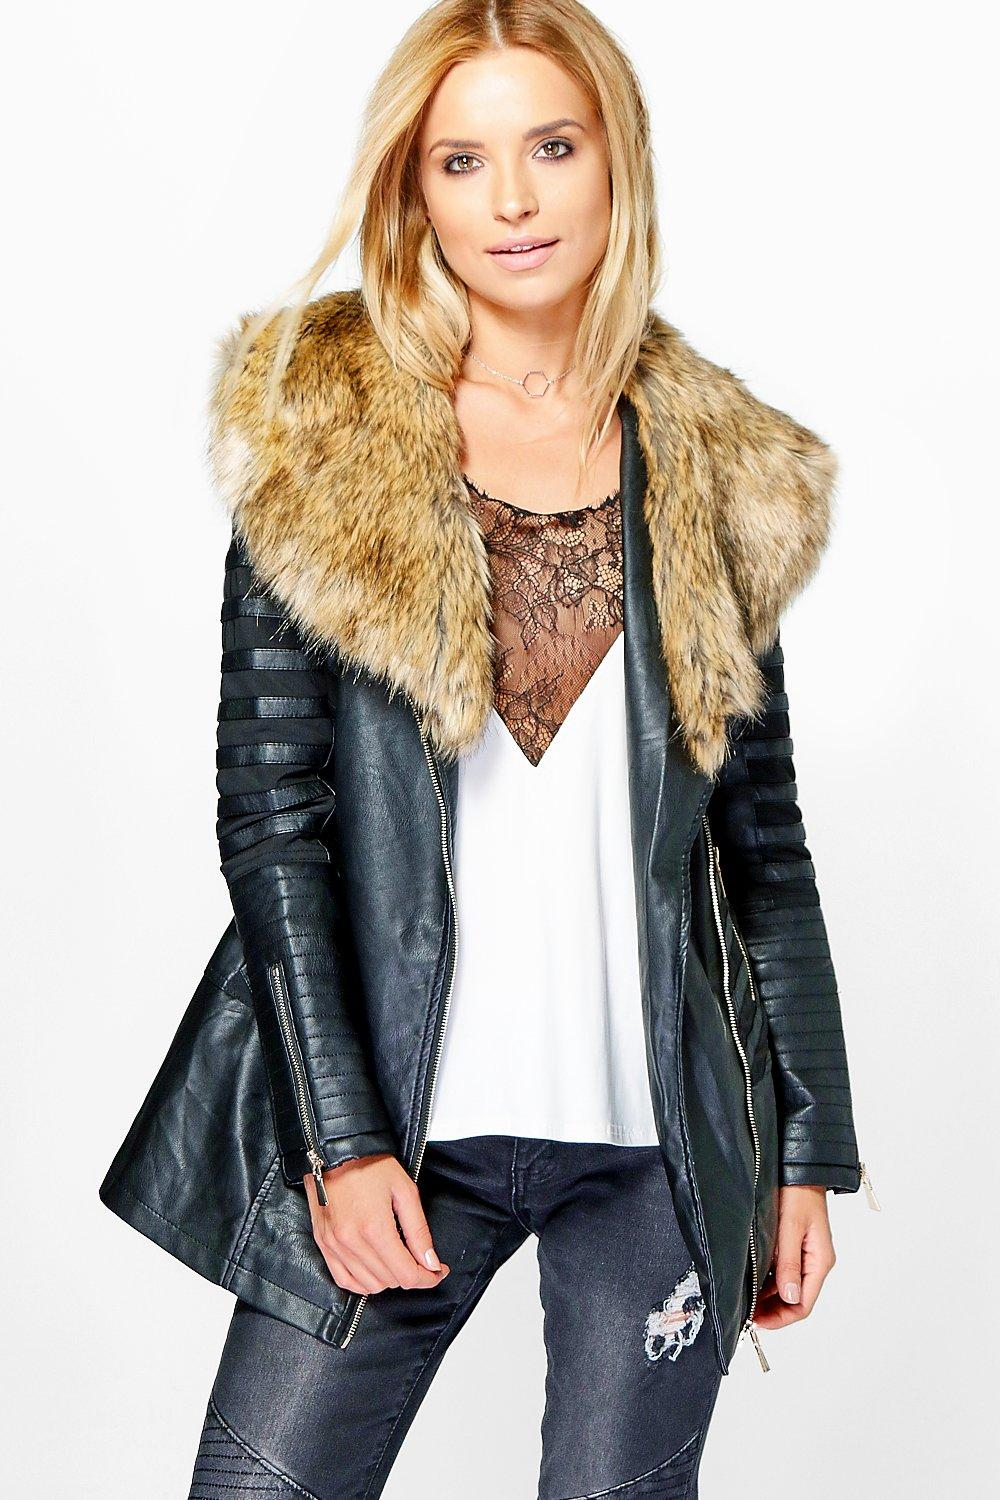 Leather Coats with Faux Fur